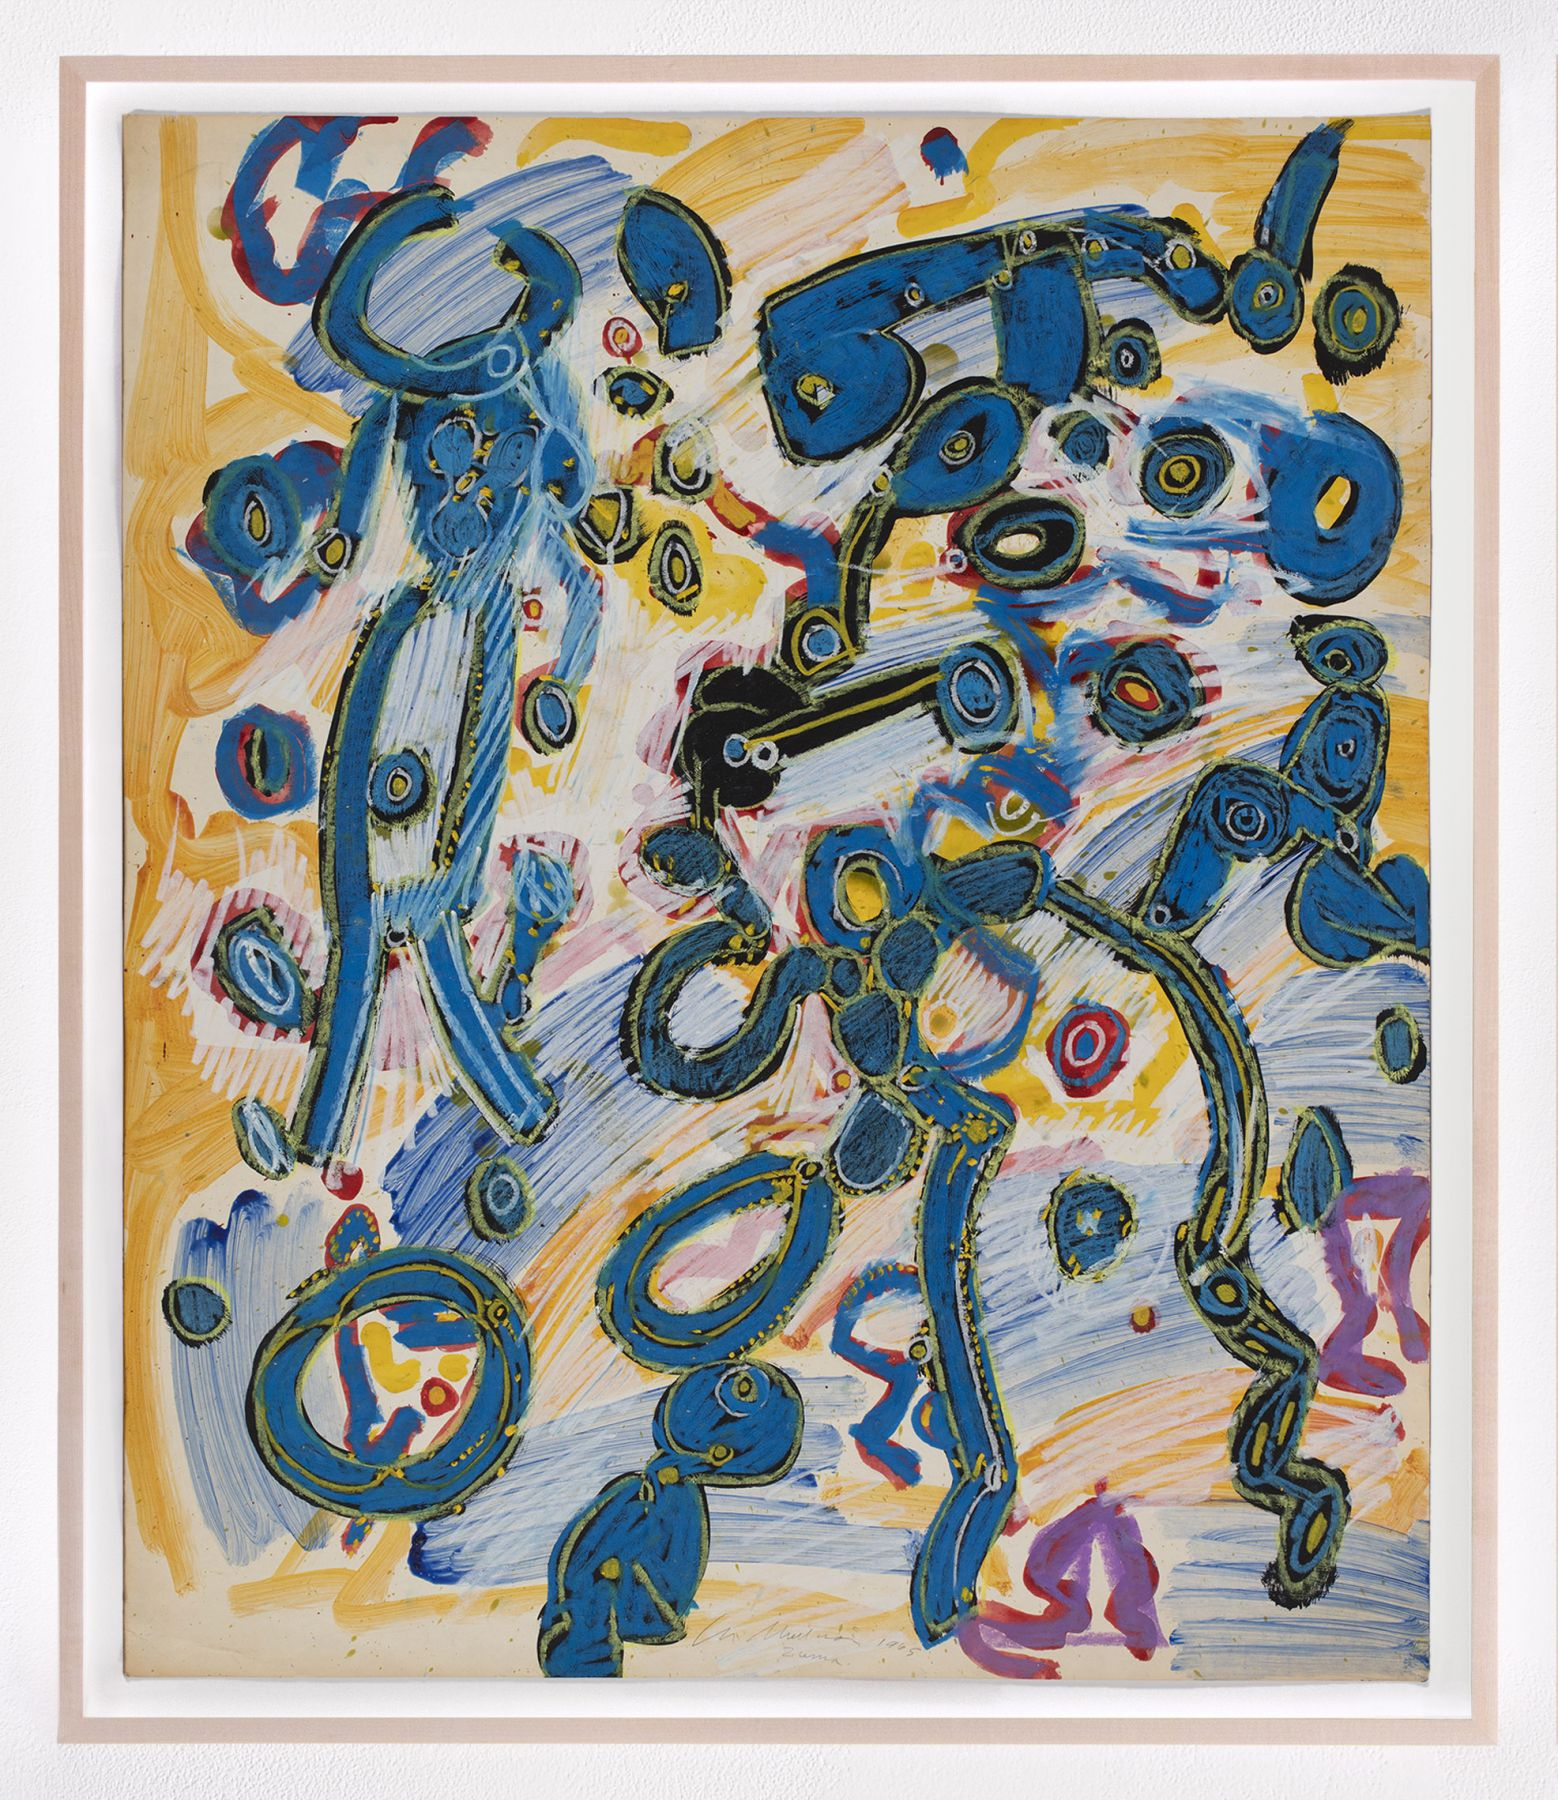 LEE MULLICANSummer world​1965Oil, acrylic, and pastel on paper30 1/2 x 25 1/2 in.77.5 x 64.8 cmJCG9347